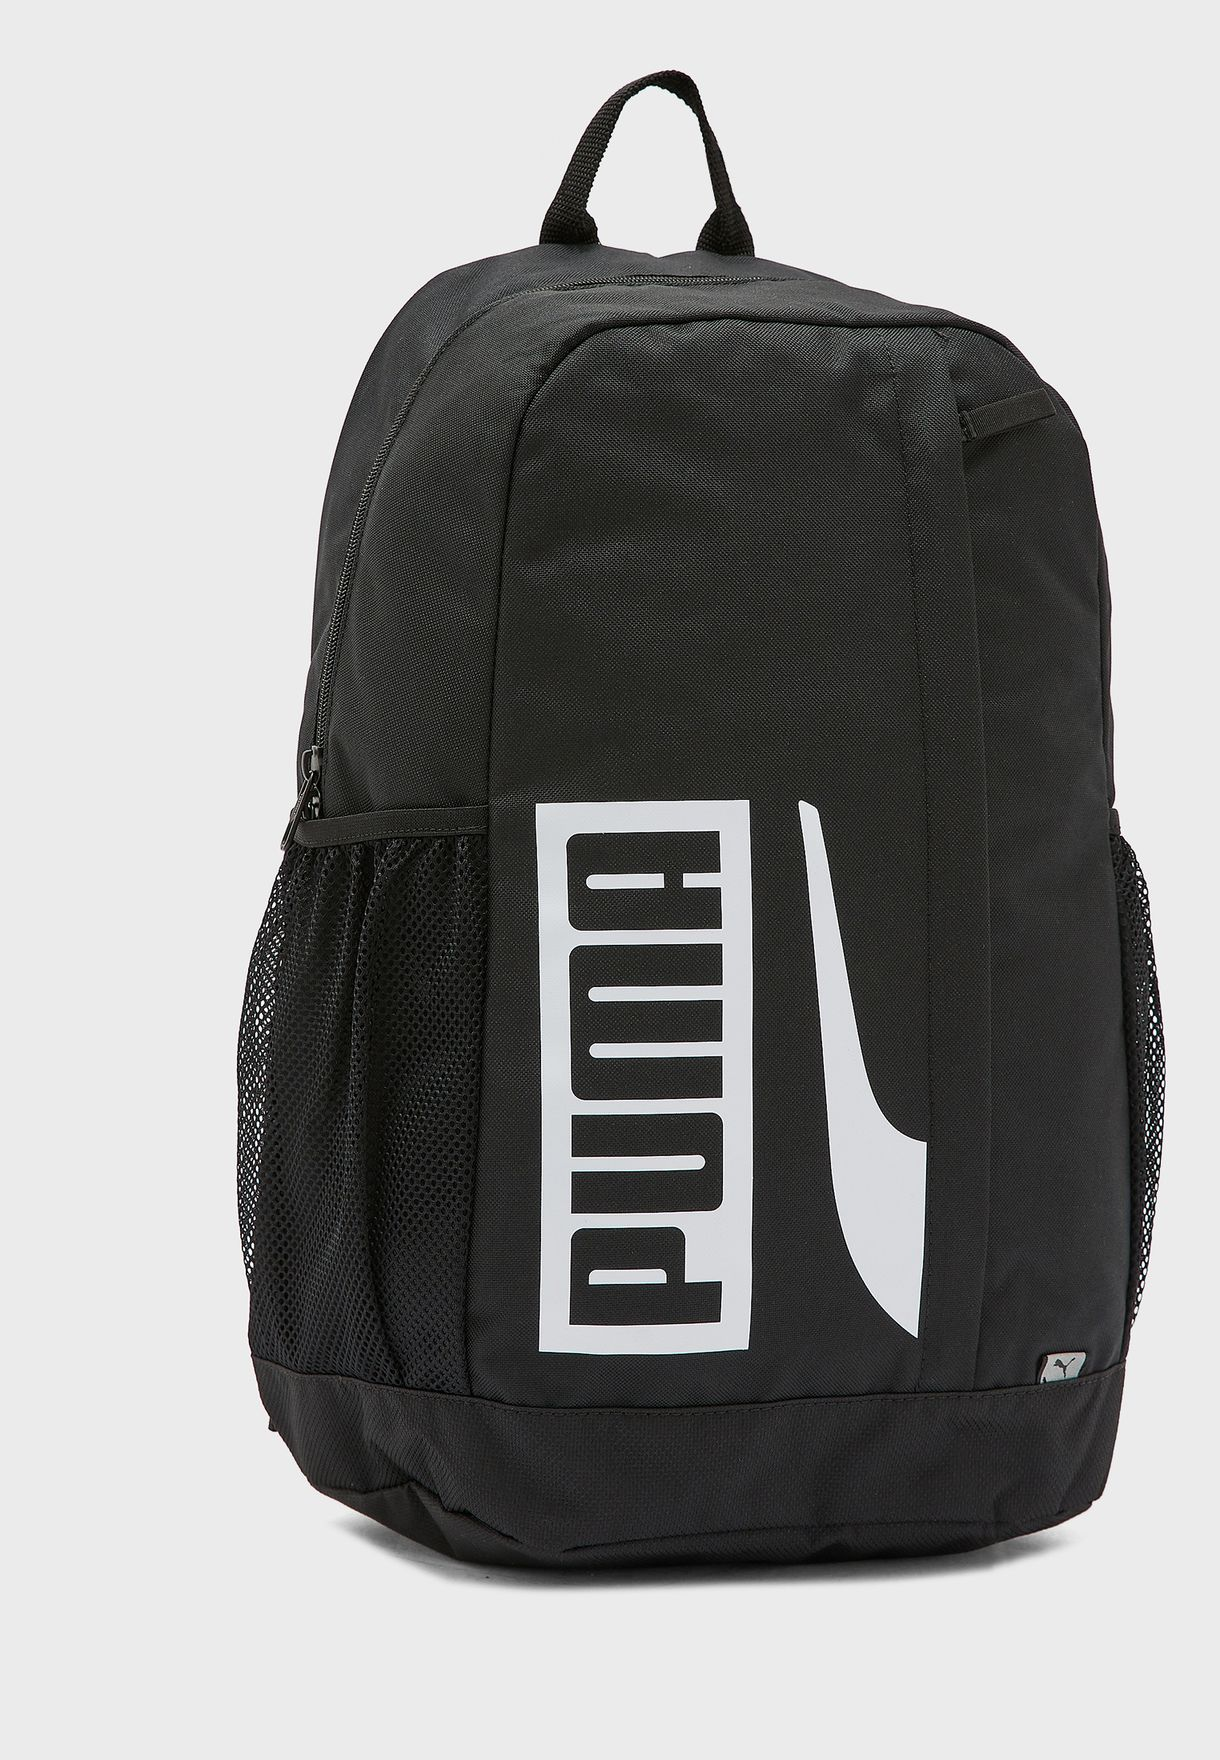 Plus Backpack